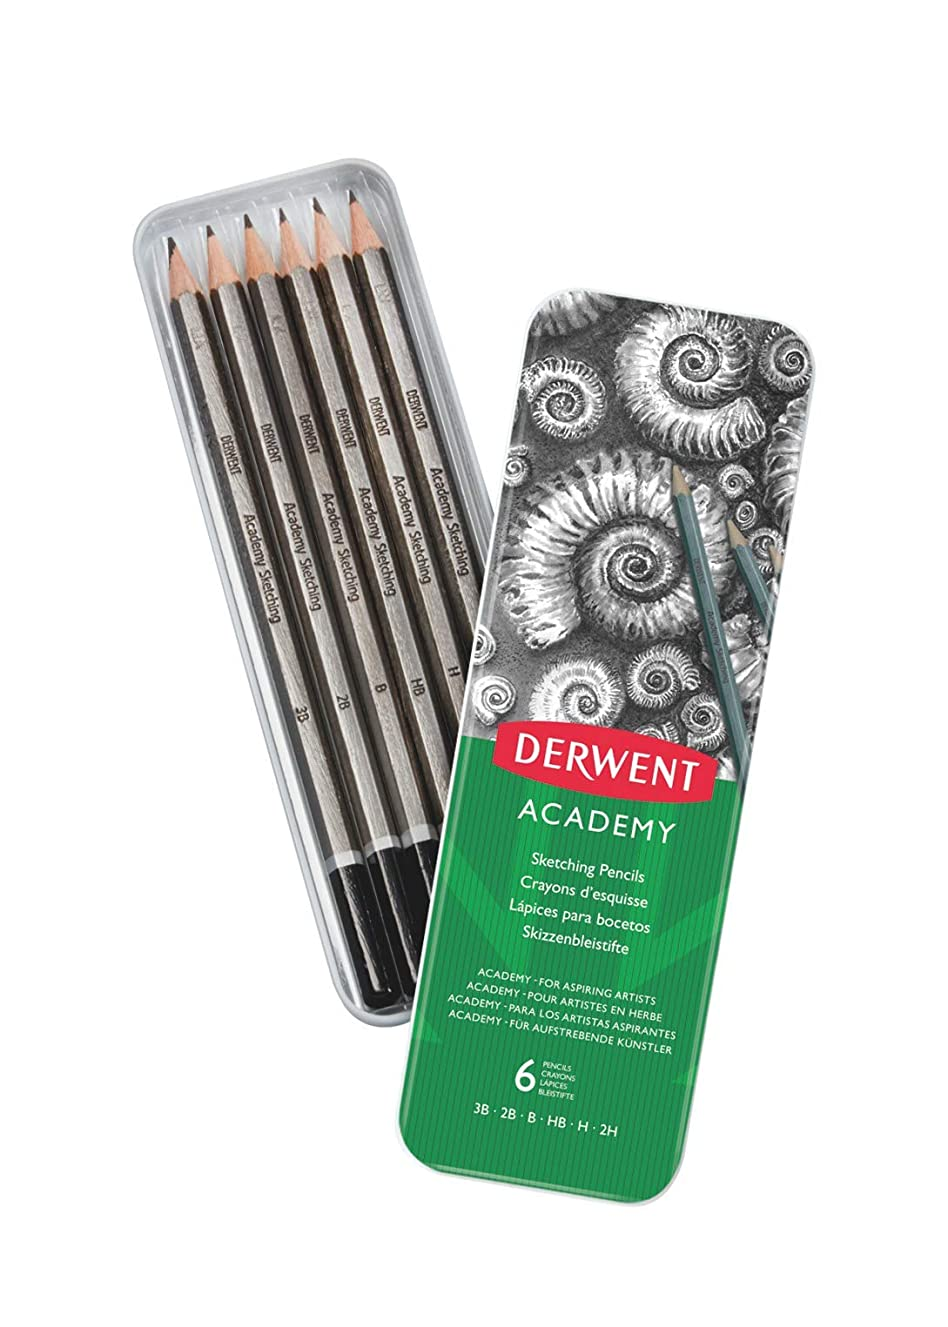 Derwent Academy Sketching Pencils, 6 Degrees of Hardness, Metal Tin, 6 Count (2301945)